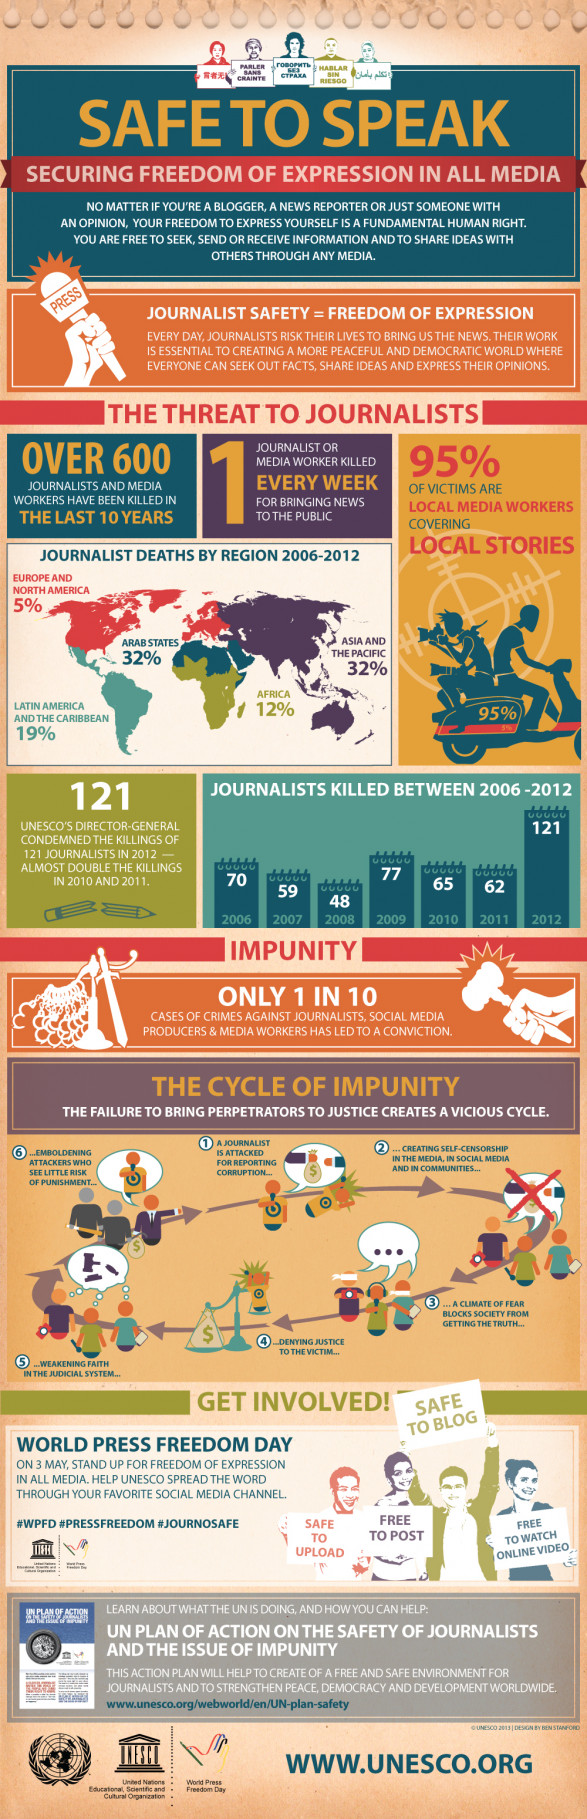 Crime & Unpunishment: Why journalists fear for their safety